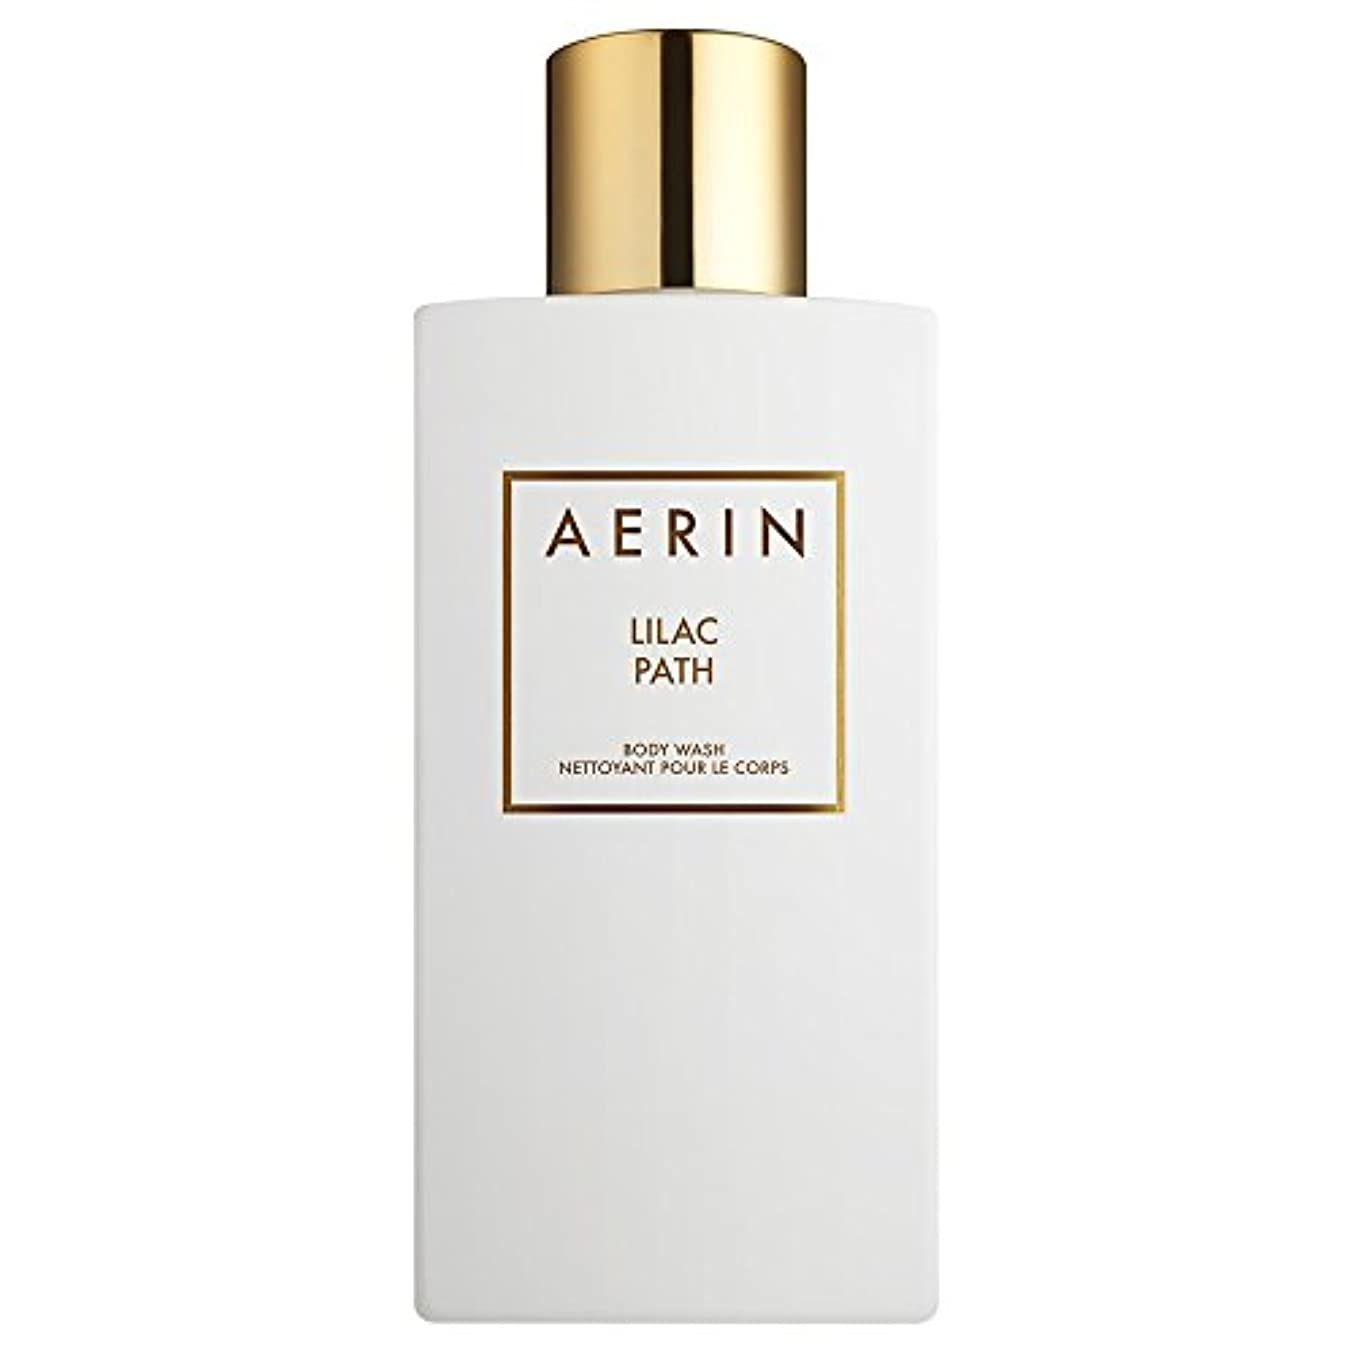 付ける副に対応するAerinライラックパスボディウォッシュ225ミリリットル (AERIN) (x2) - AERIN Lilac Path Bodywash 225ml (Pack of 2) [並行輸入品]